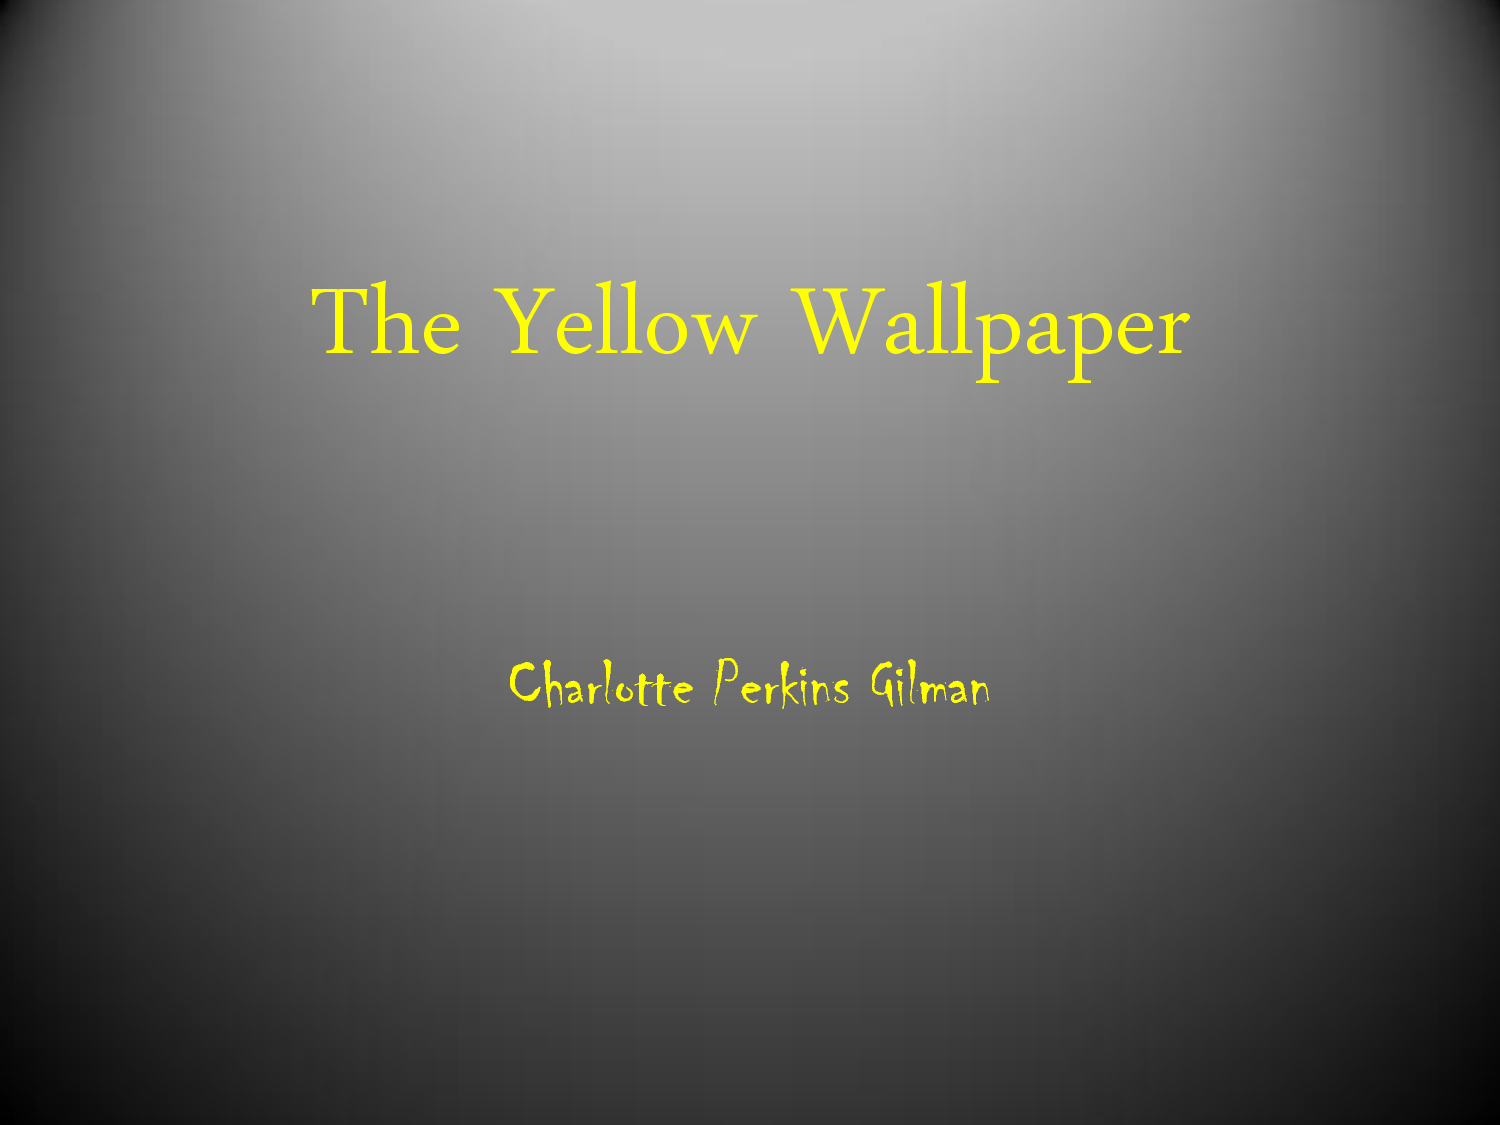 literary analysis essay on the yellow wallpaper Literary analysis handout - free download as word doc (doc / docx), pdf file (pdf), text file (txt) or read online for free.